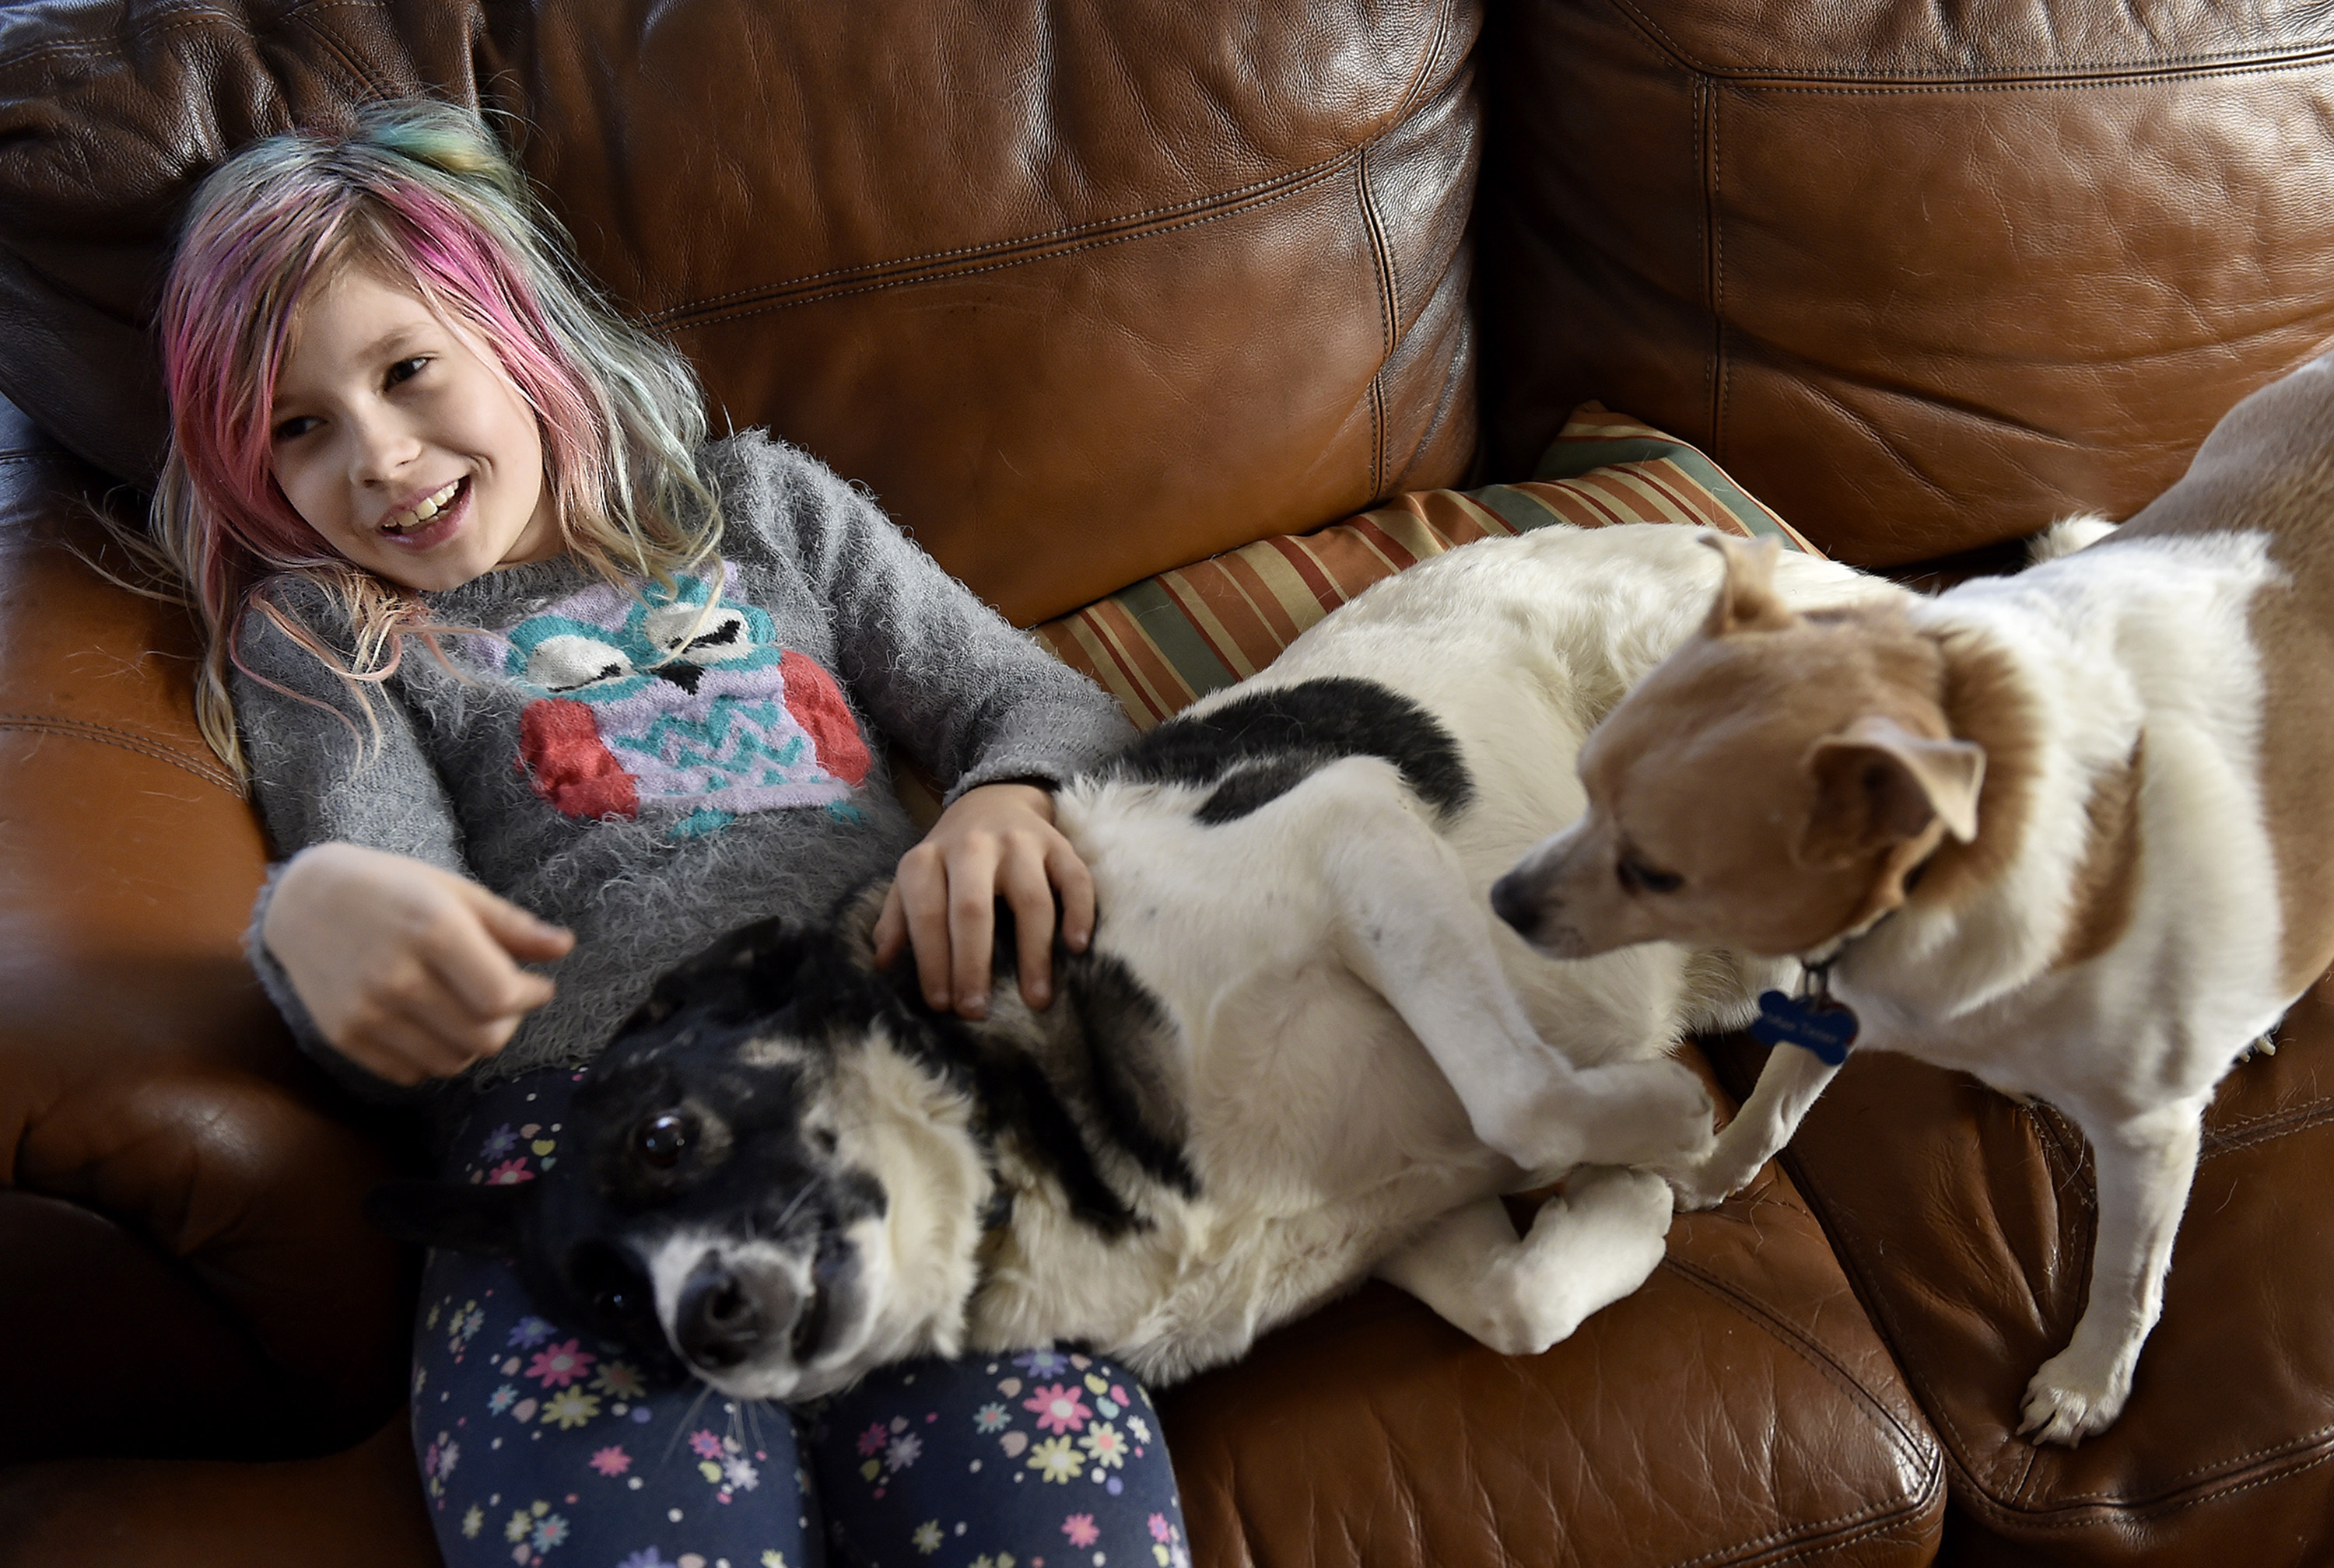 Avery Jackson hangs out with Mickey and Max, right, Wednesday, Dec. 21, 2016 in her Kansas City, Mo., home. (Jill Toyoshiba/Kansas City Star/TNS)